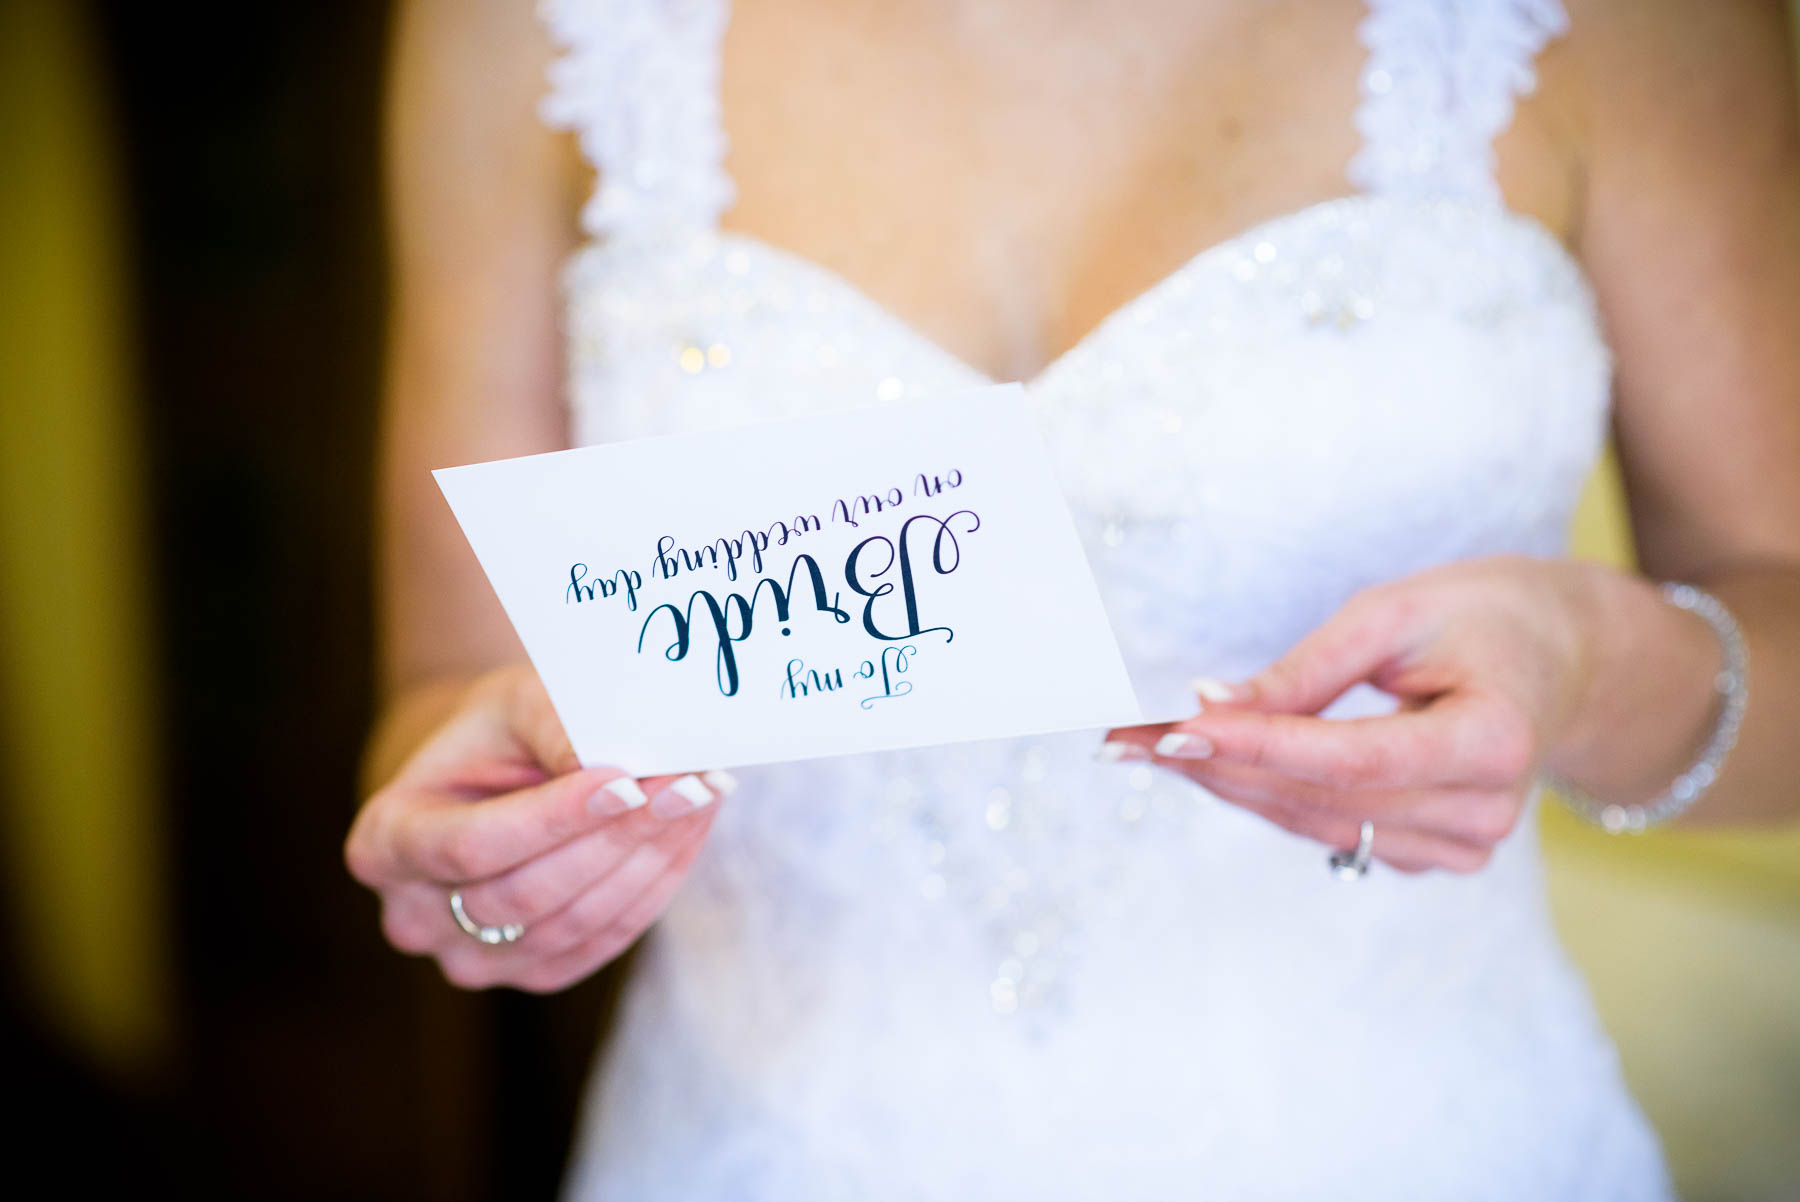 Bride reads a note from the groom before the wedding ceremony at Baker Memorial United Methodist Church in St. Charles